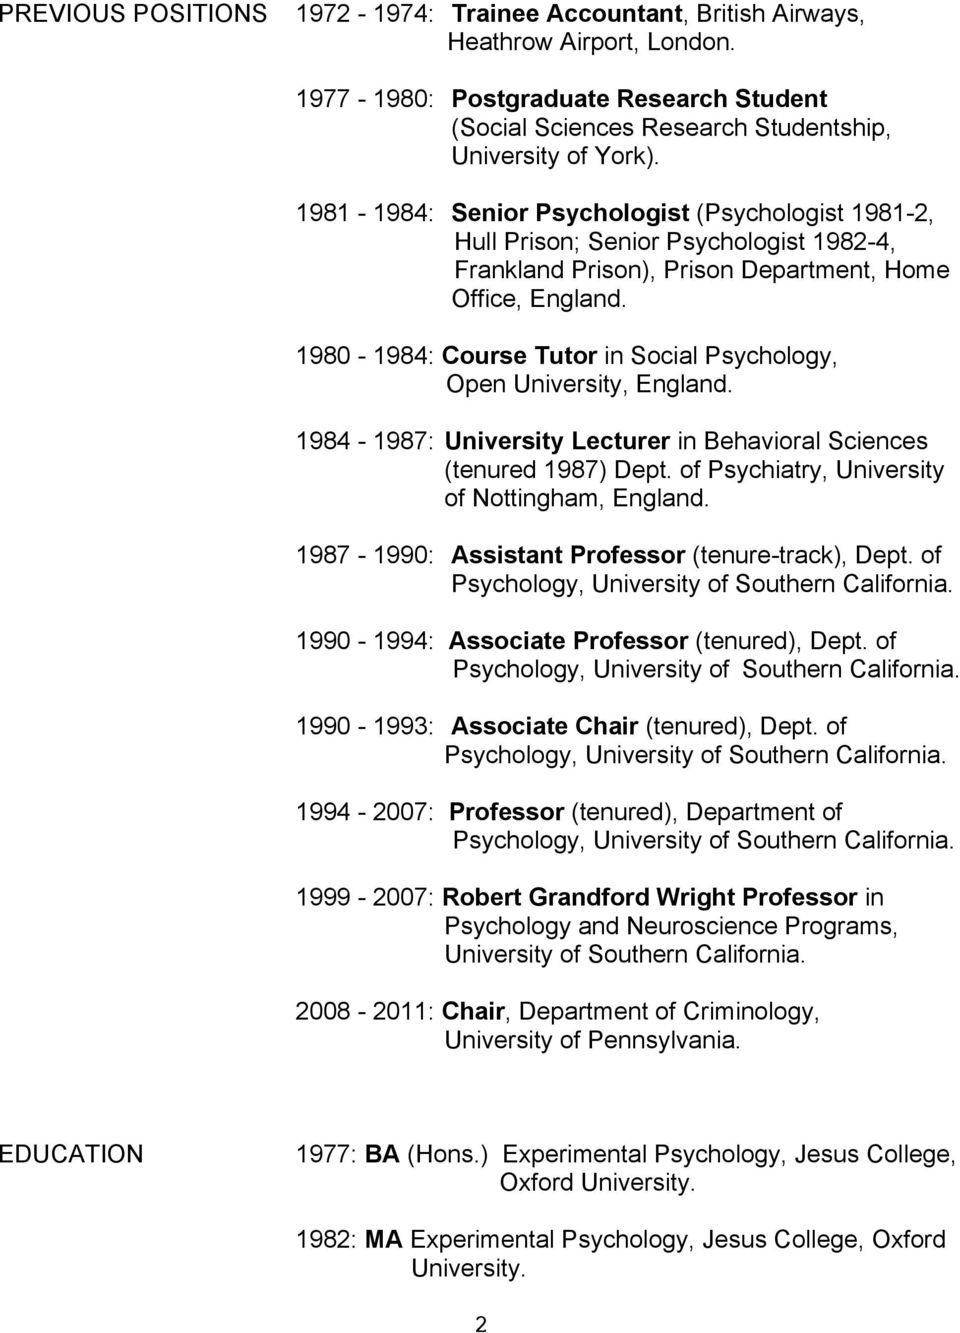 1980-1984: Course Tutor in Social Psychology, Open University, England. 1984-1987: University Lecturer in Behavioral Sciences (tenured 1987) Dept. of Psychiatry, University of Nottingham, England.